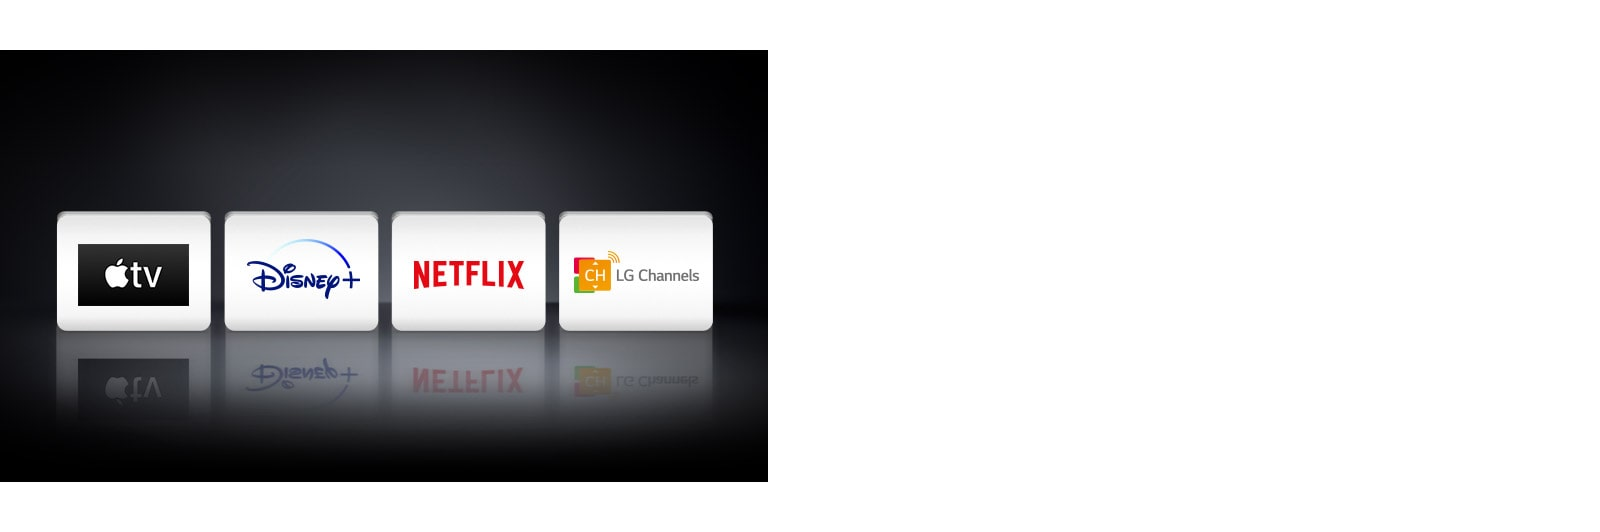 Four app logos shown left to right: Apple TV, Disney +, Netflix, and LG Channels.